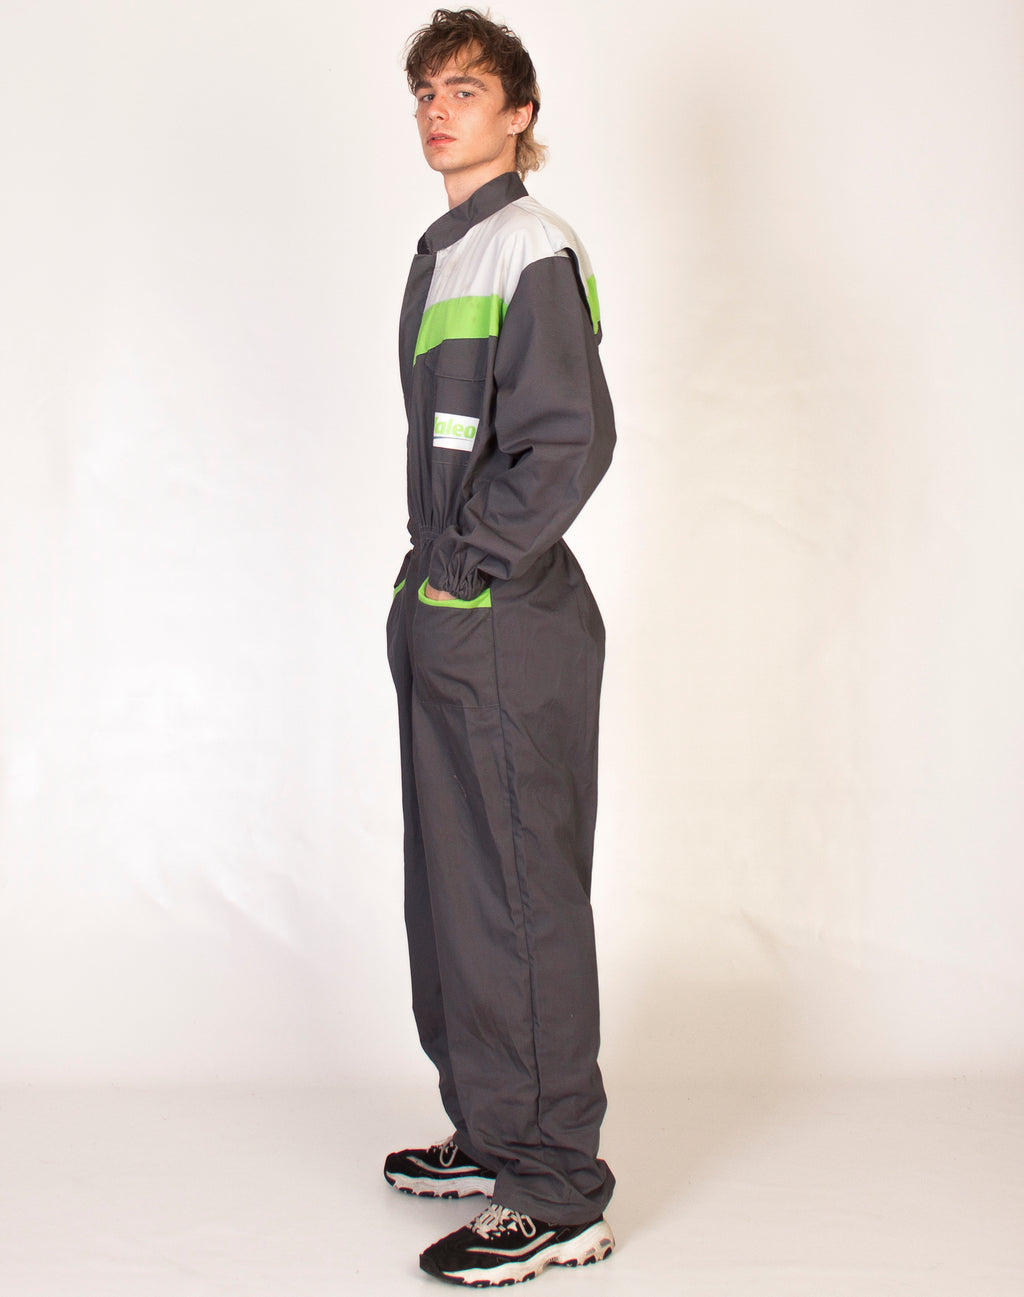 VALEO RACING GREY OVERALLS